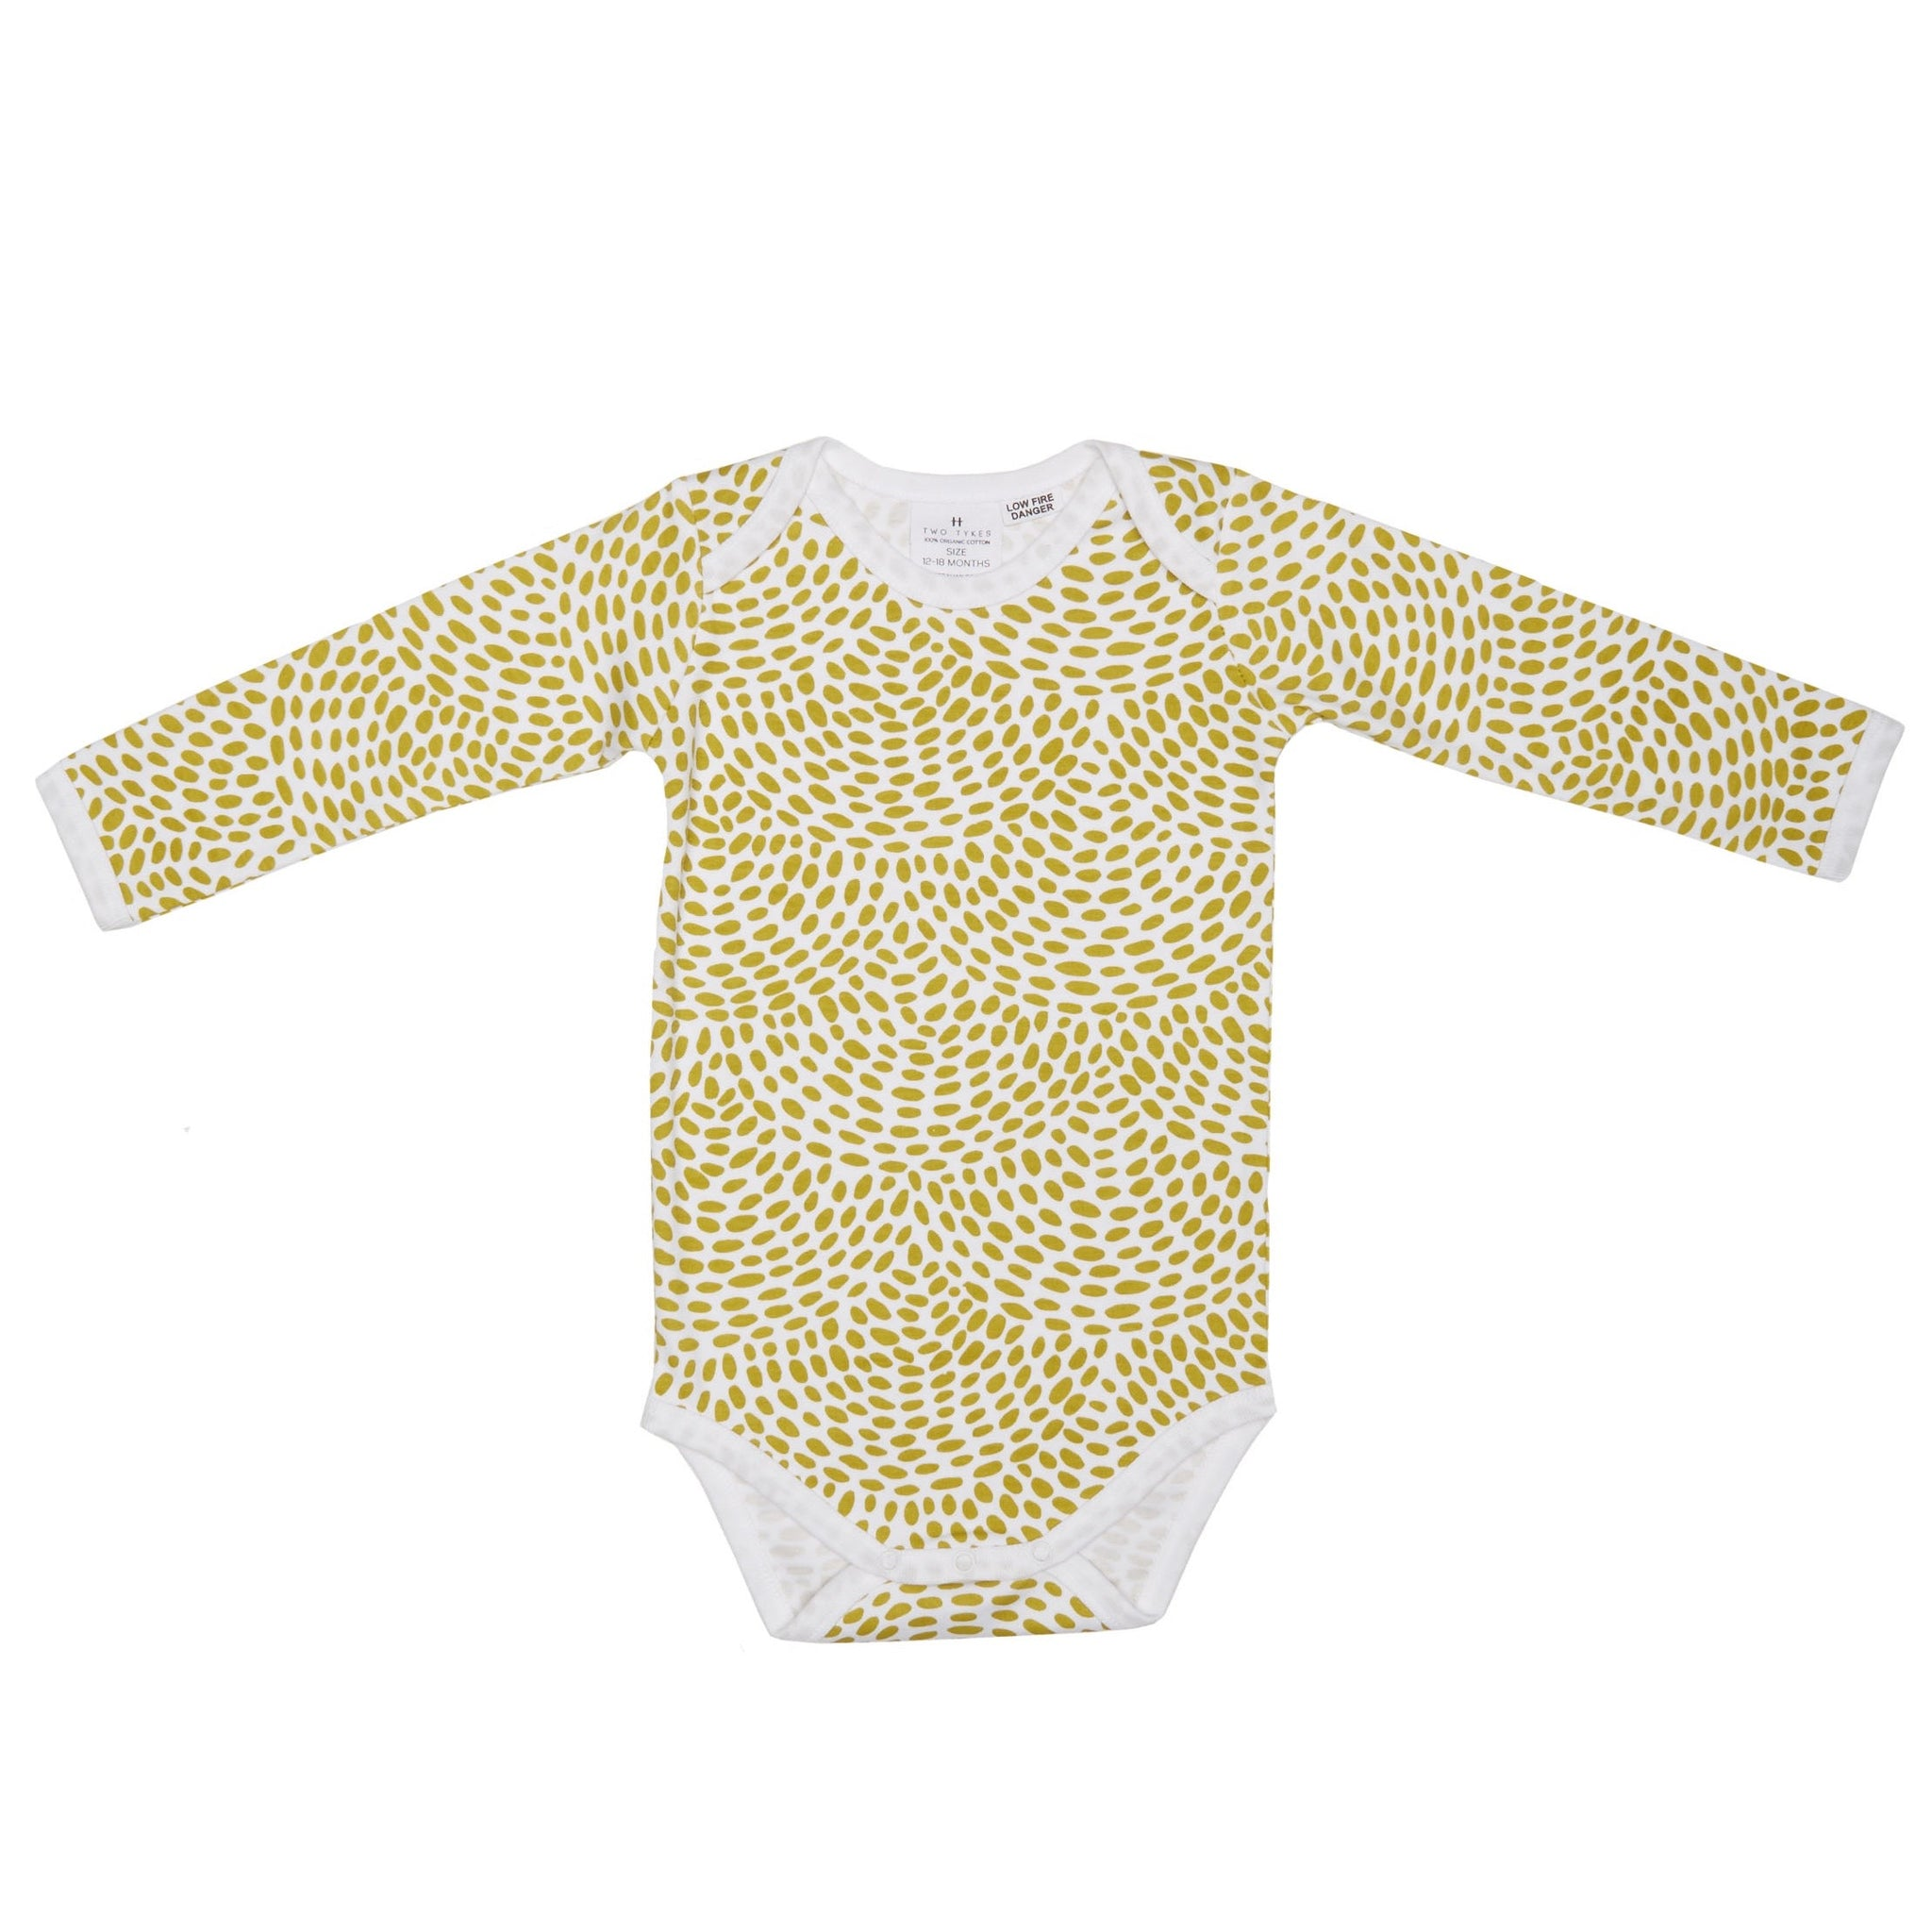 Moss Long Sleeve Baby Suit